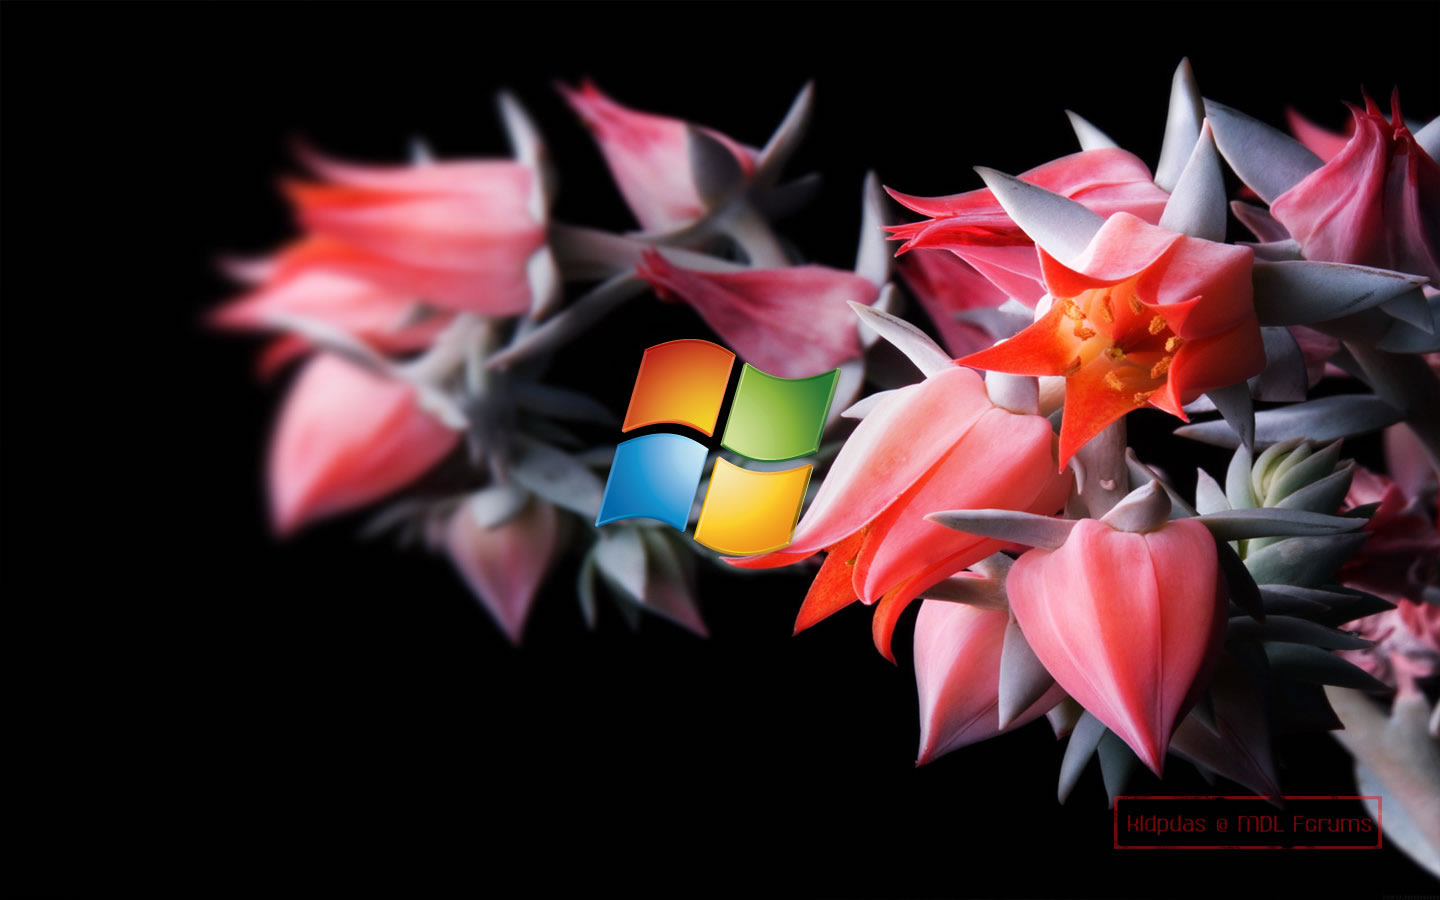 Download Desktop Wallpapers For Windows 8 Elegance Collections 1440x900